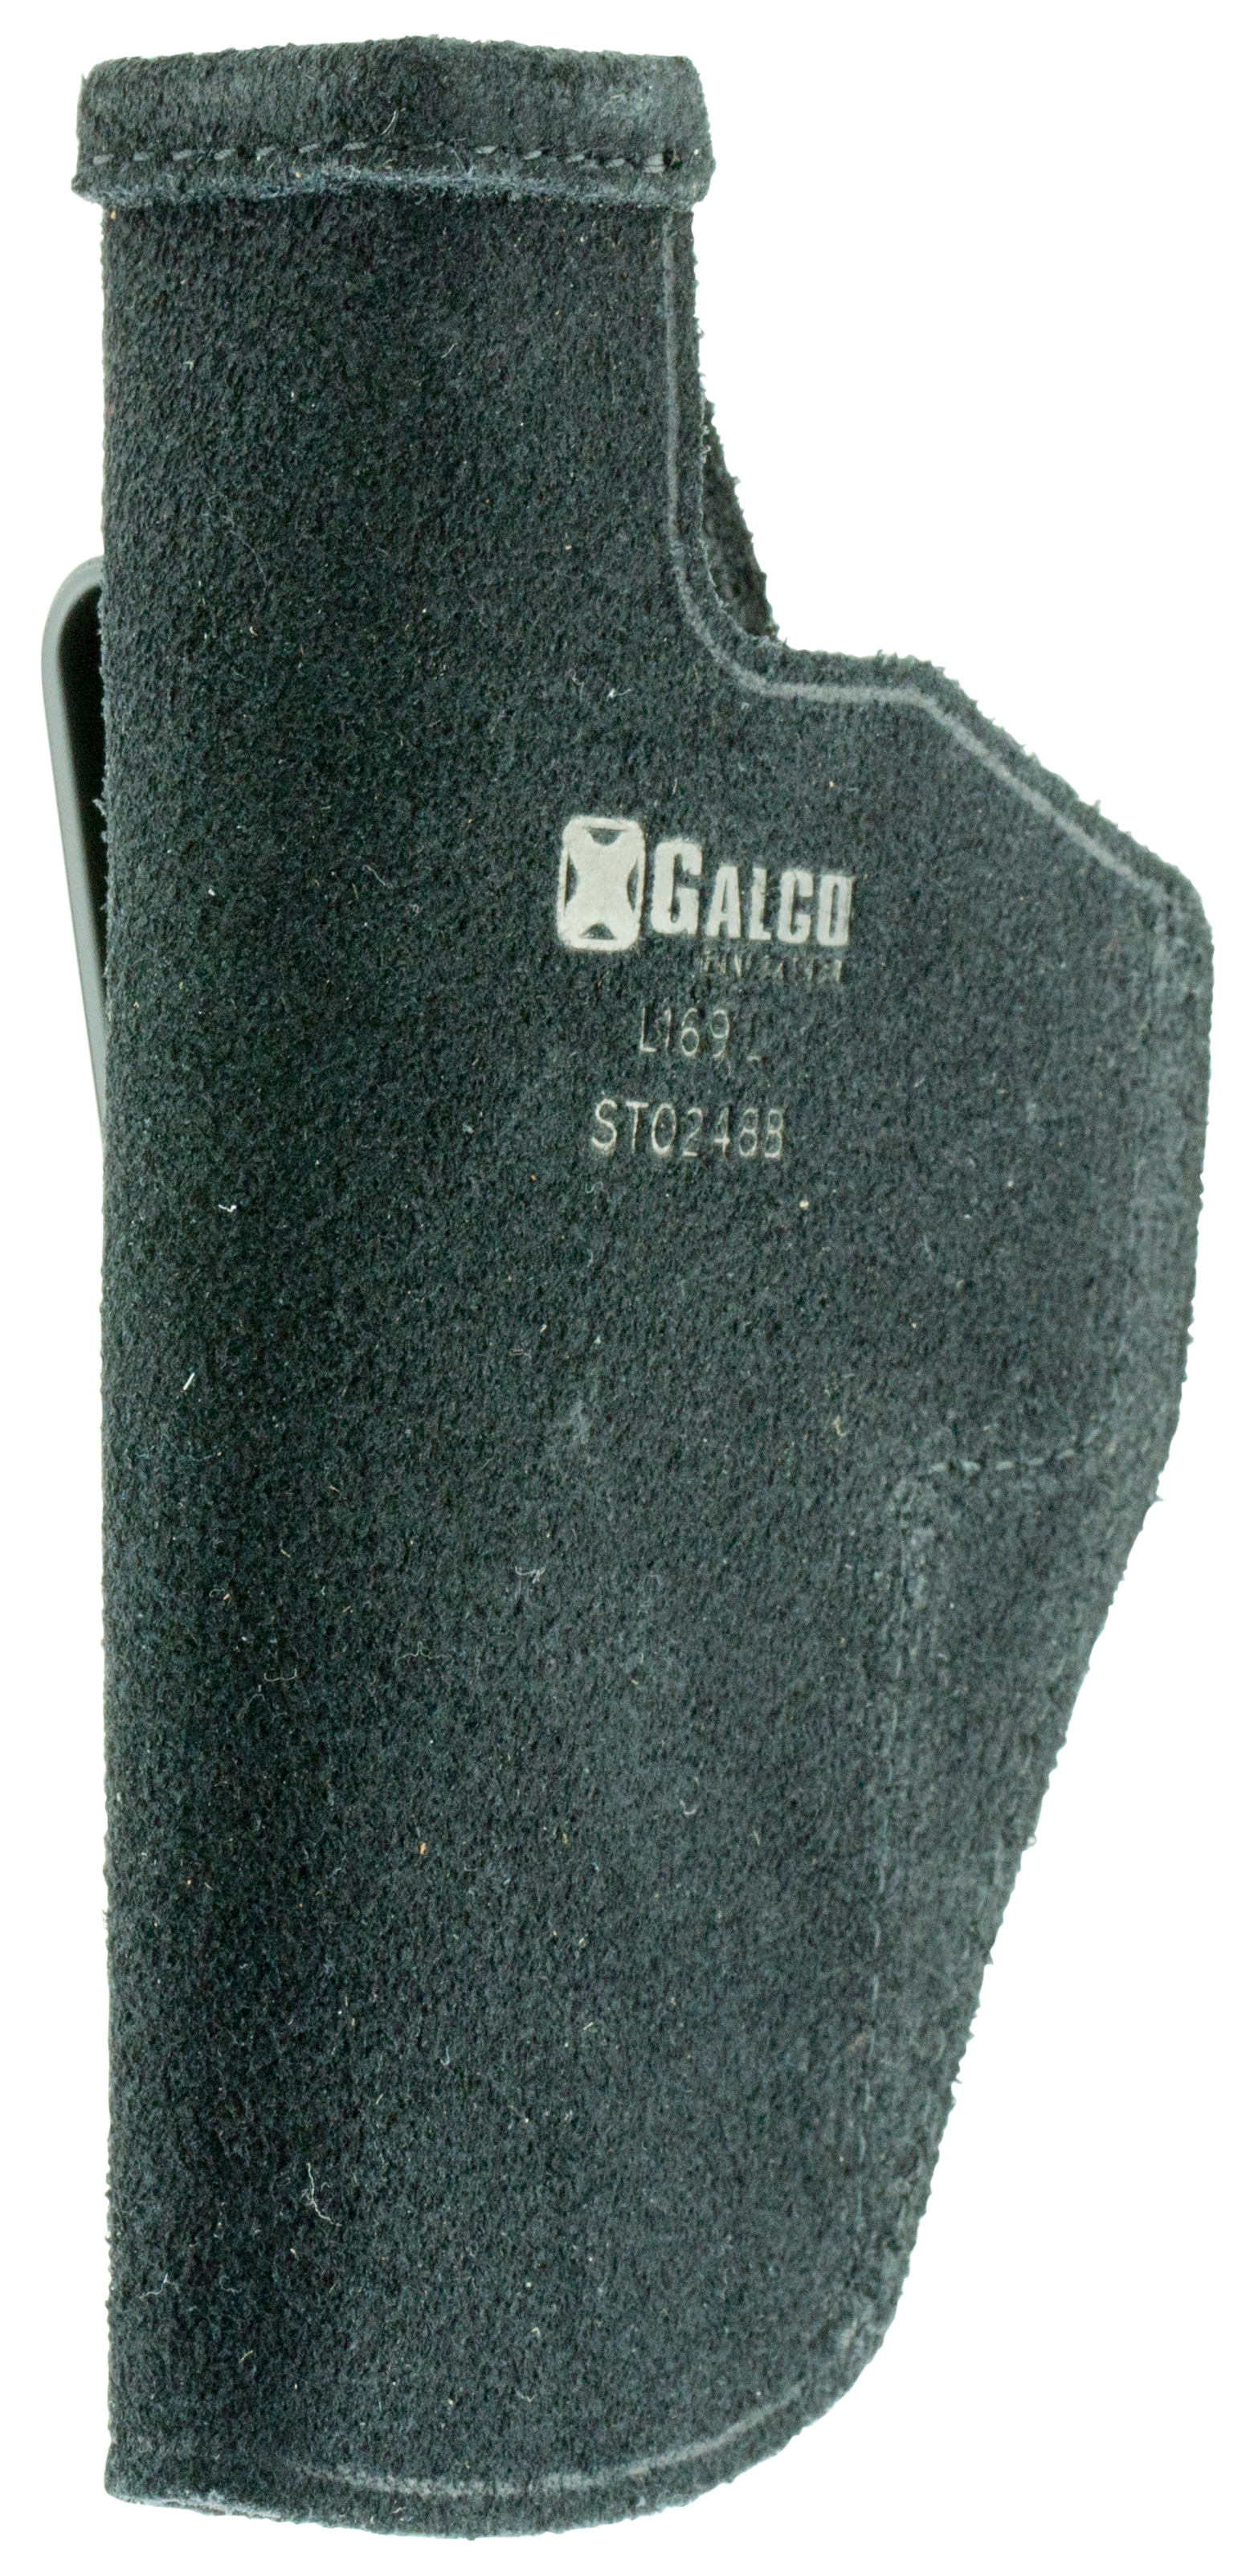 Galco® Stow-N-Go™ Inside the Pant Holster - SIG® P226 - Black